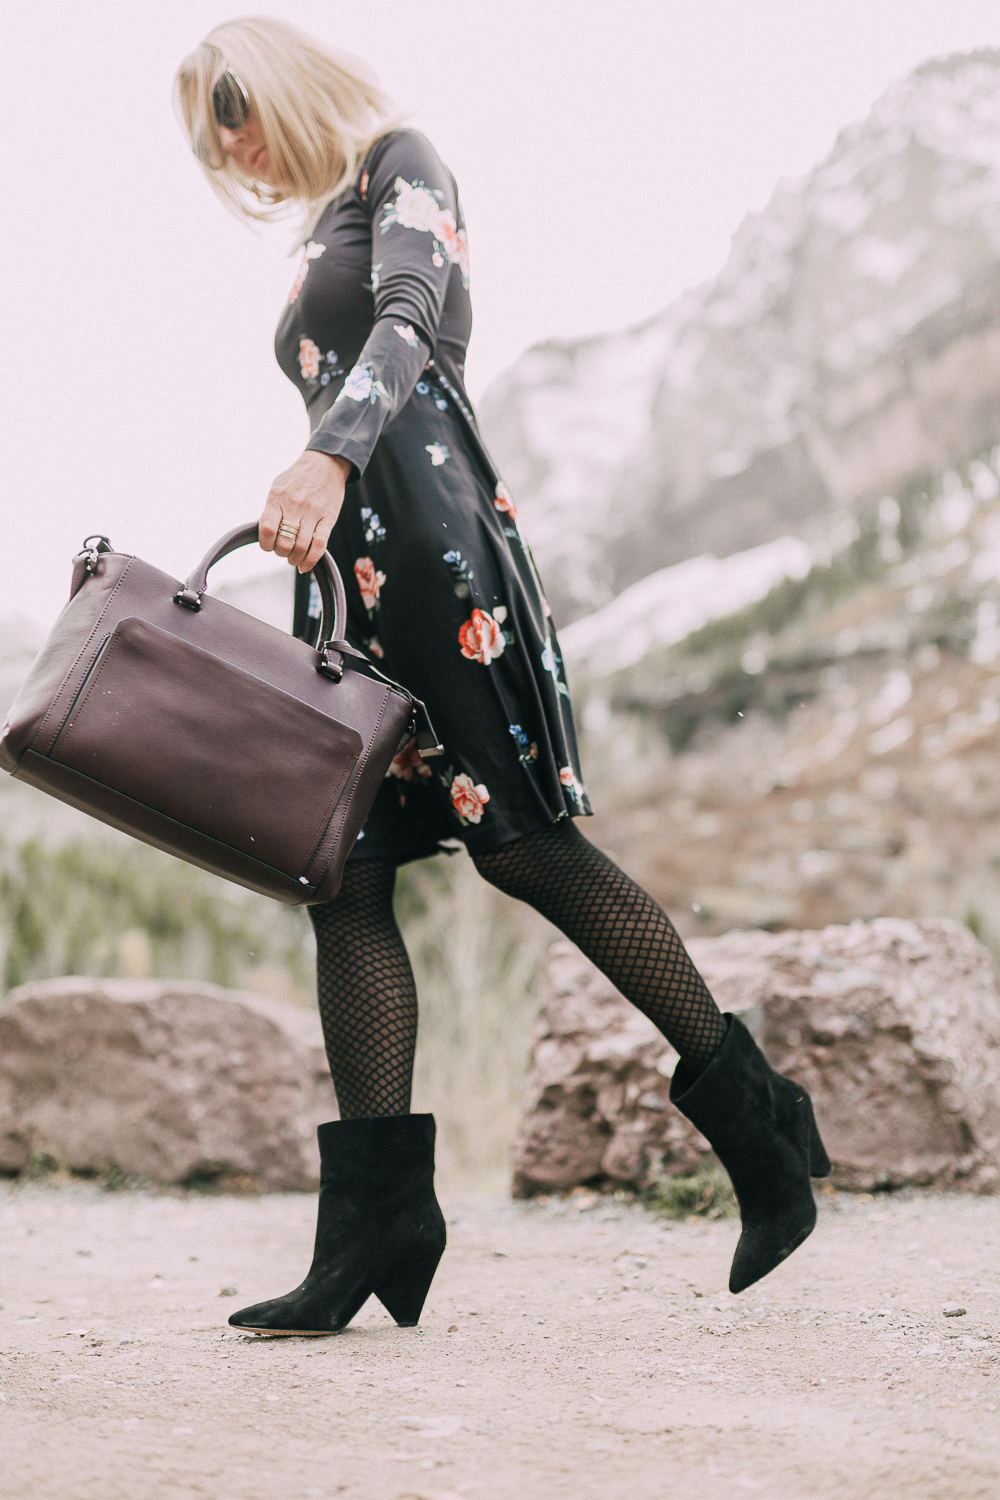 black regina suede Booties by Vince Camuto paired with black floral print dress and burgundy leather tote bag on blonde woman in rocky mountains